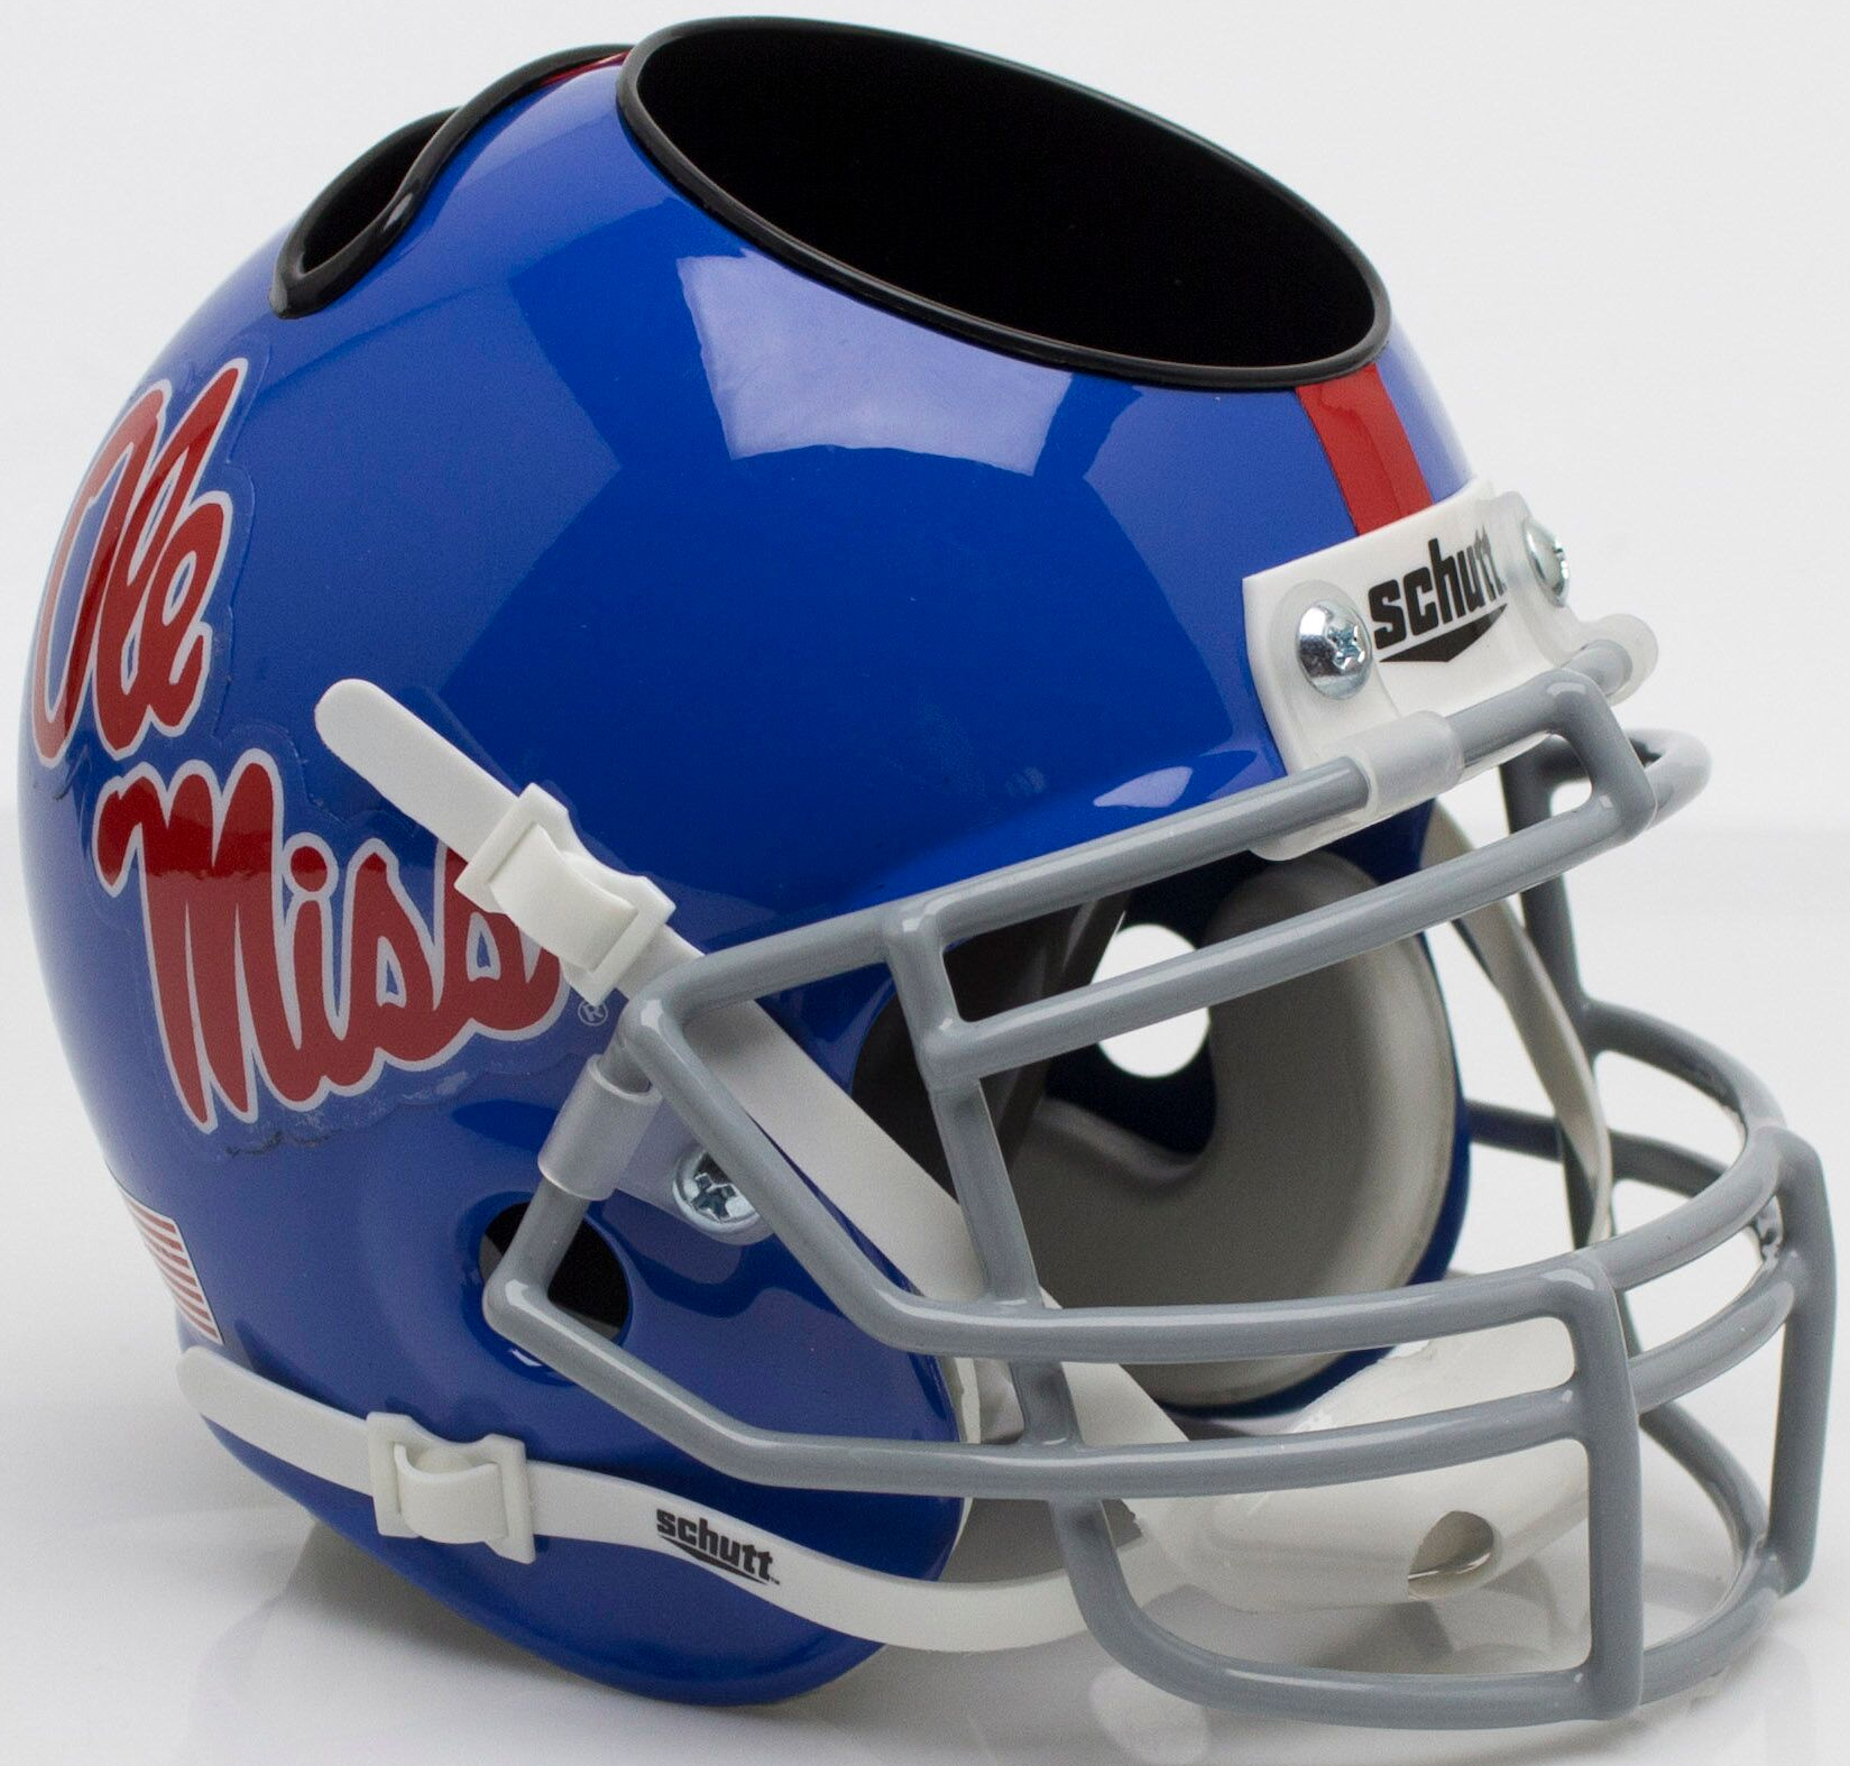 Mississippi (Ole Miss) Rebels Miniature Football Helmet Desk Caddy <B>Powder Blue</B>